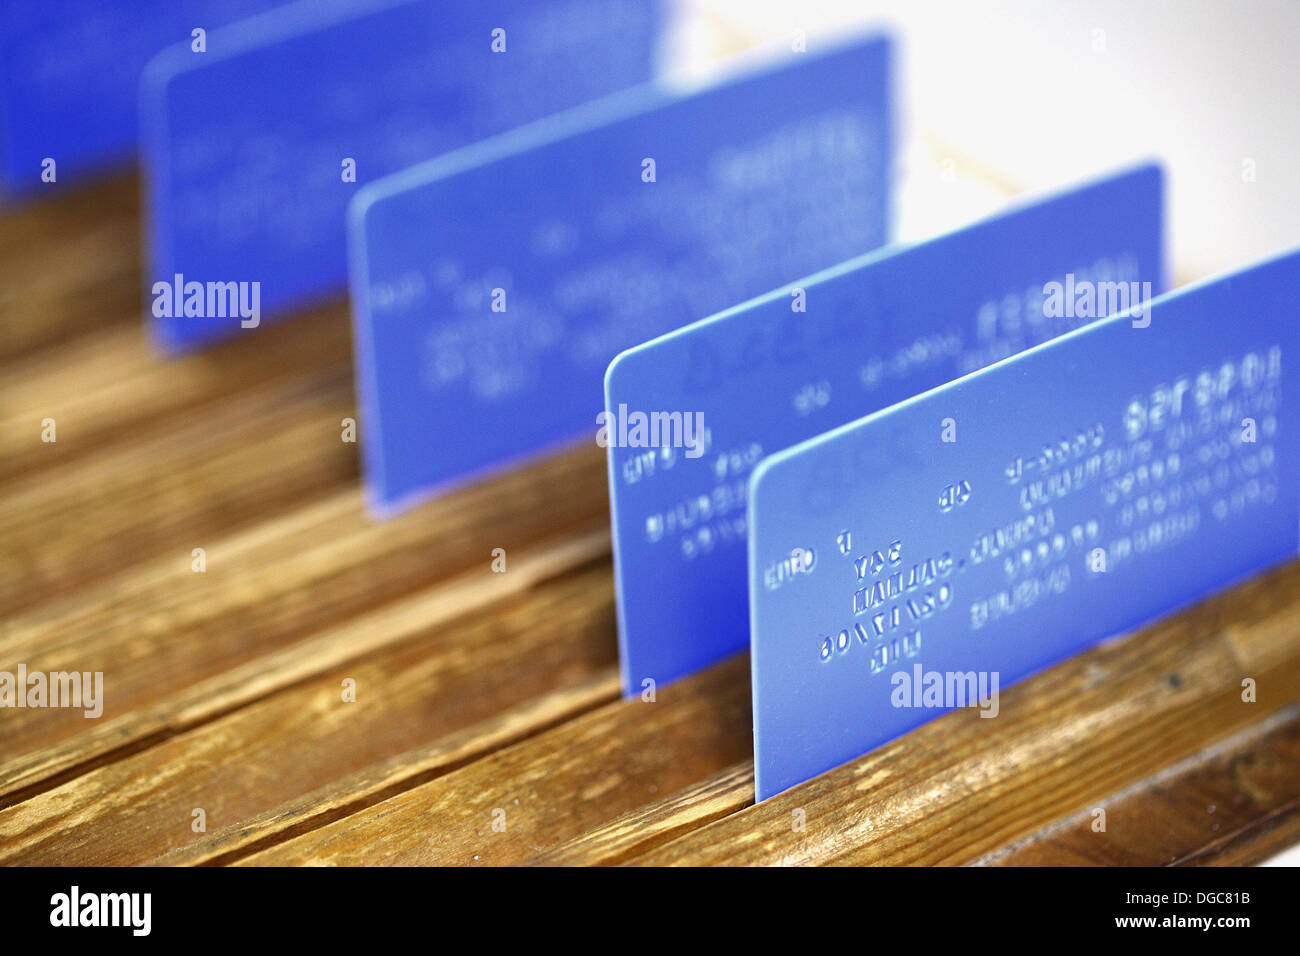 ID cards backwards in rack - Stock Image